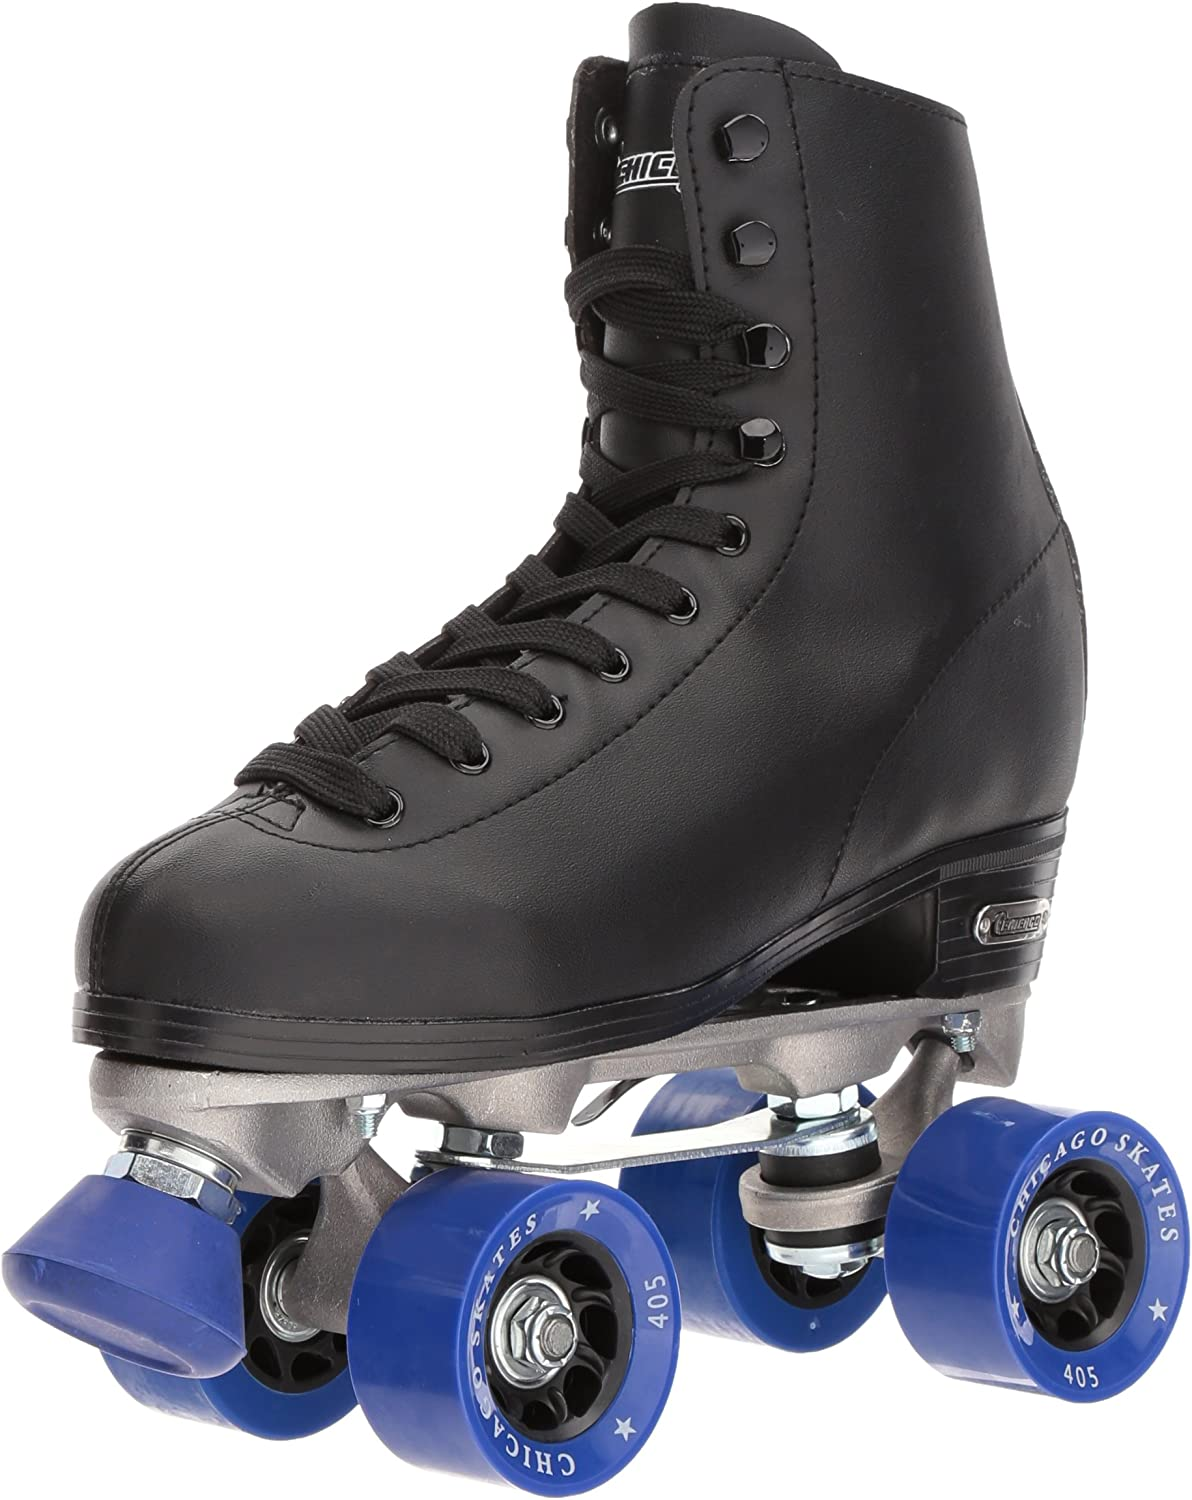 Chicago Men's Classic Roller Skates - Premium Black Quad Rink Skates / UK